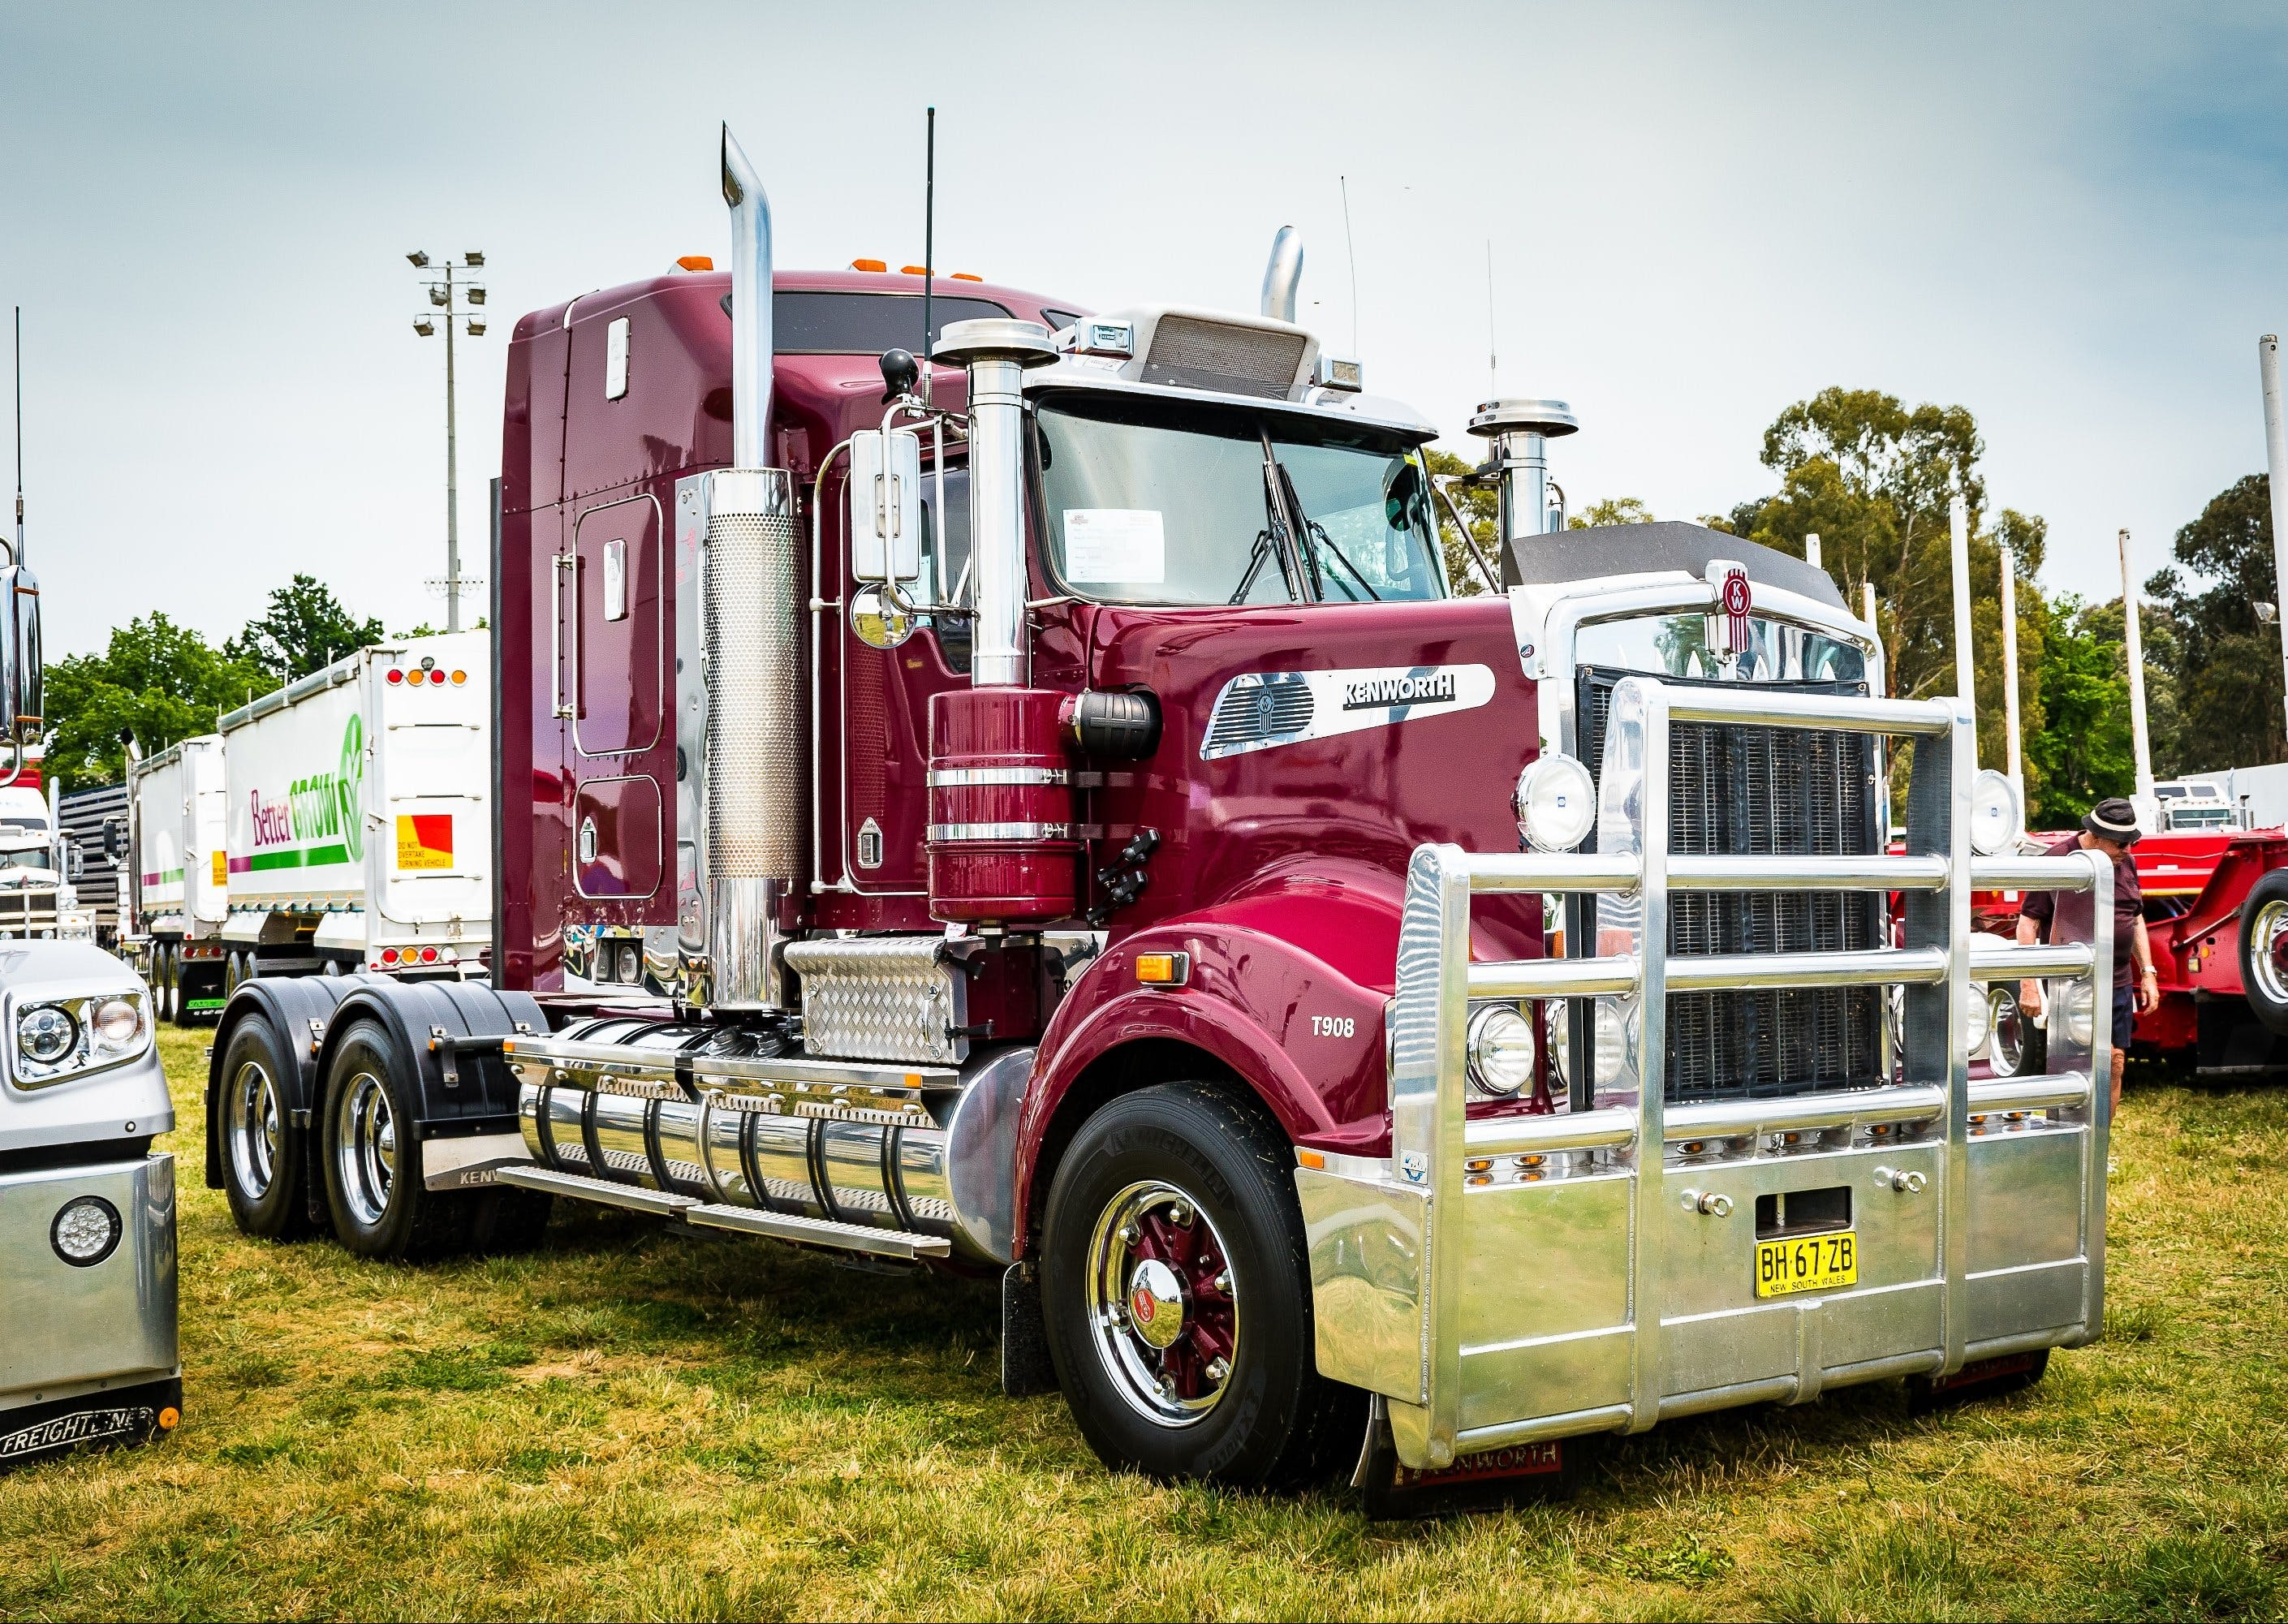 Dane Ballinger Memorial Truck Show - New South Wales Tourism